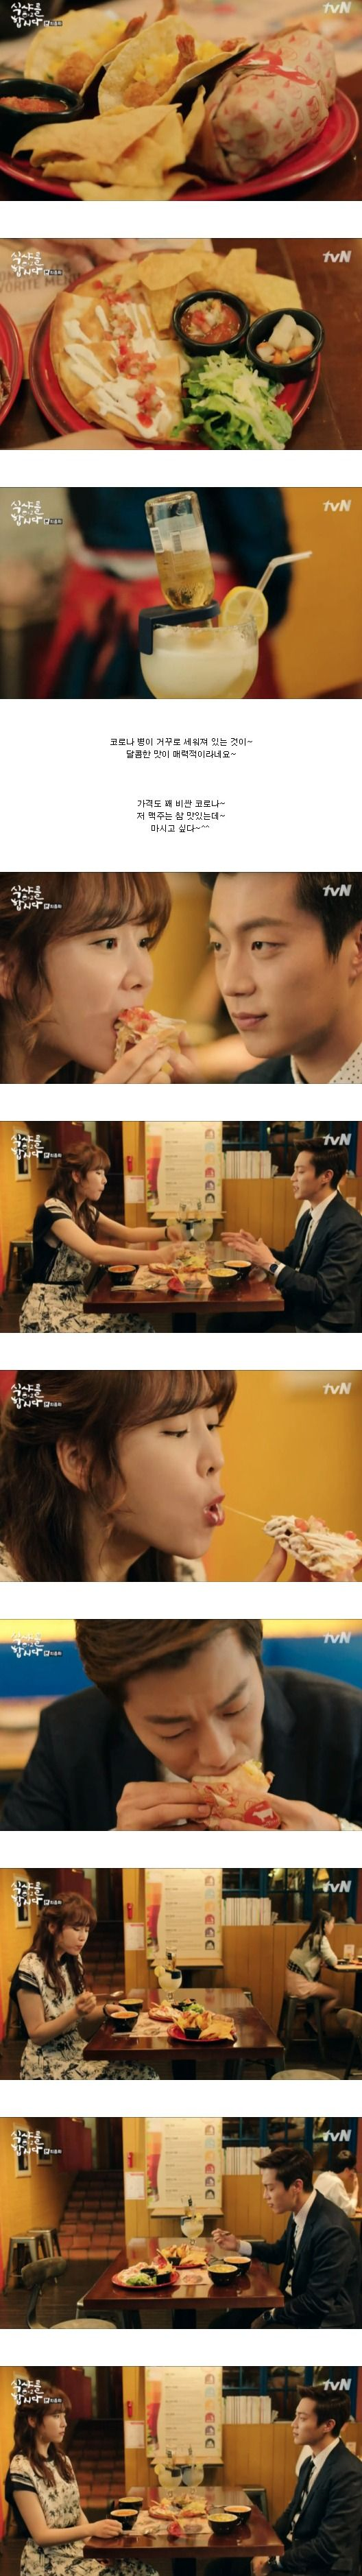 [Spoiler] Added episode 18 captures for the Korean drama 'Let's Eat - Season 2' @ HanCinema :: The Korean Movie and Drama Database